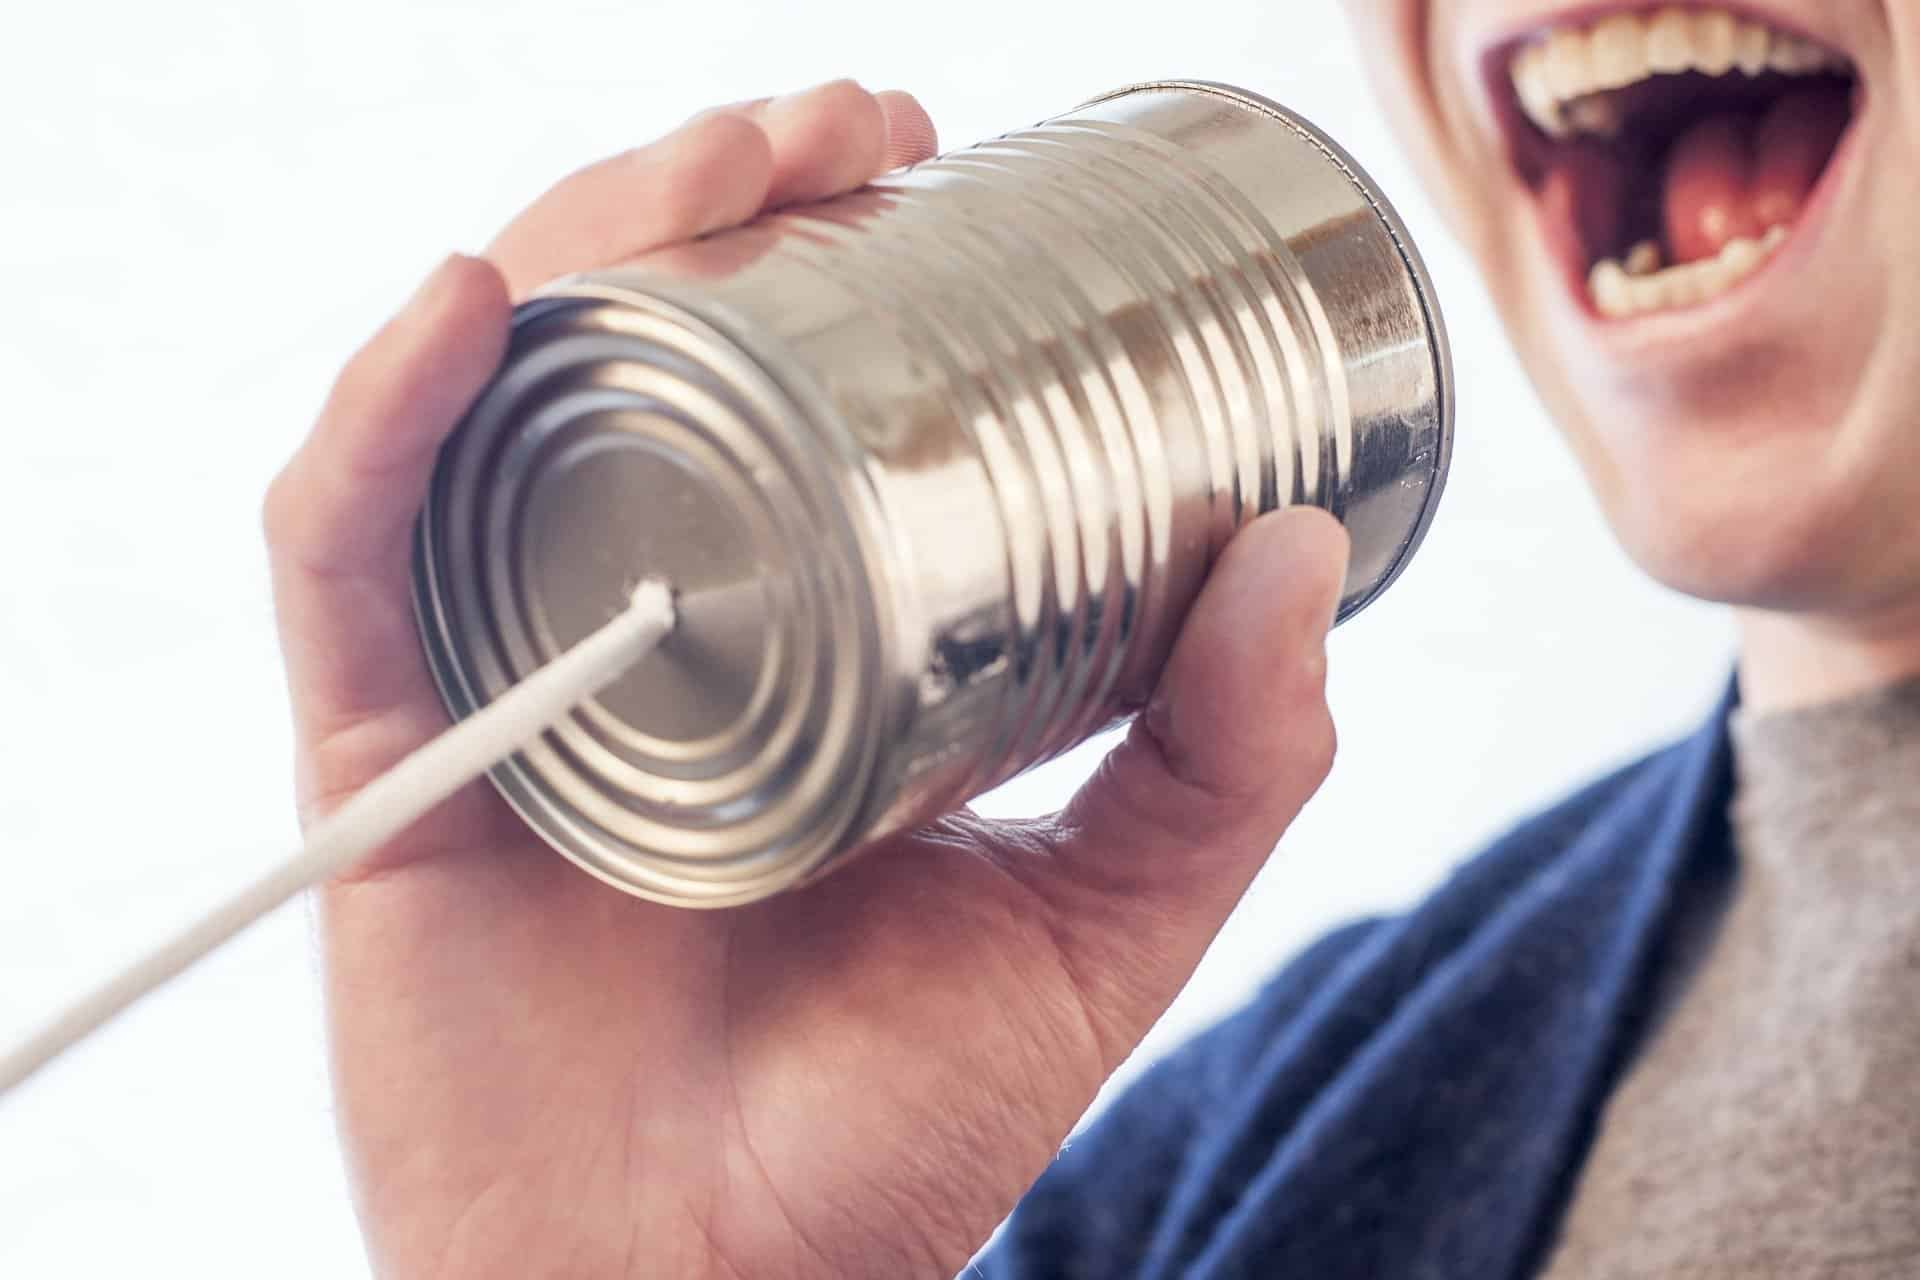 makeshift communication device using a soup can and string